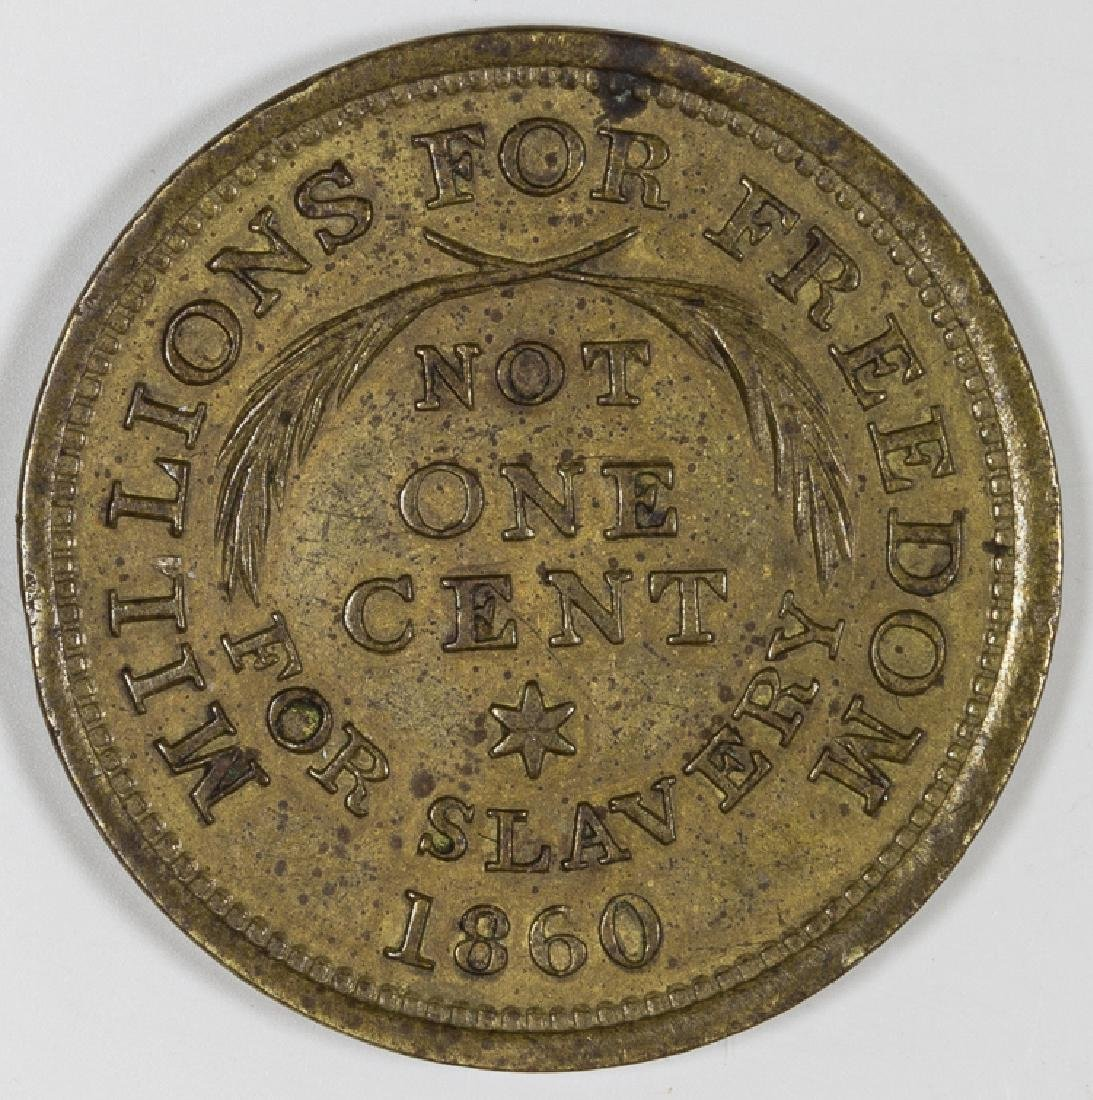 1860 REPUBLICAN TOKEN